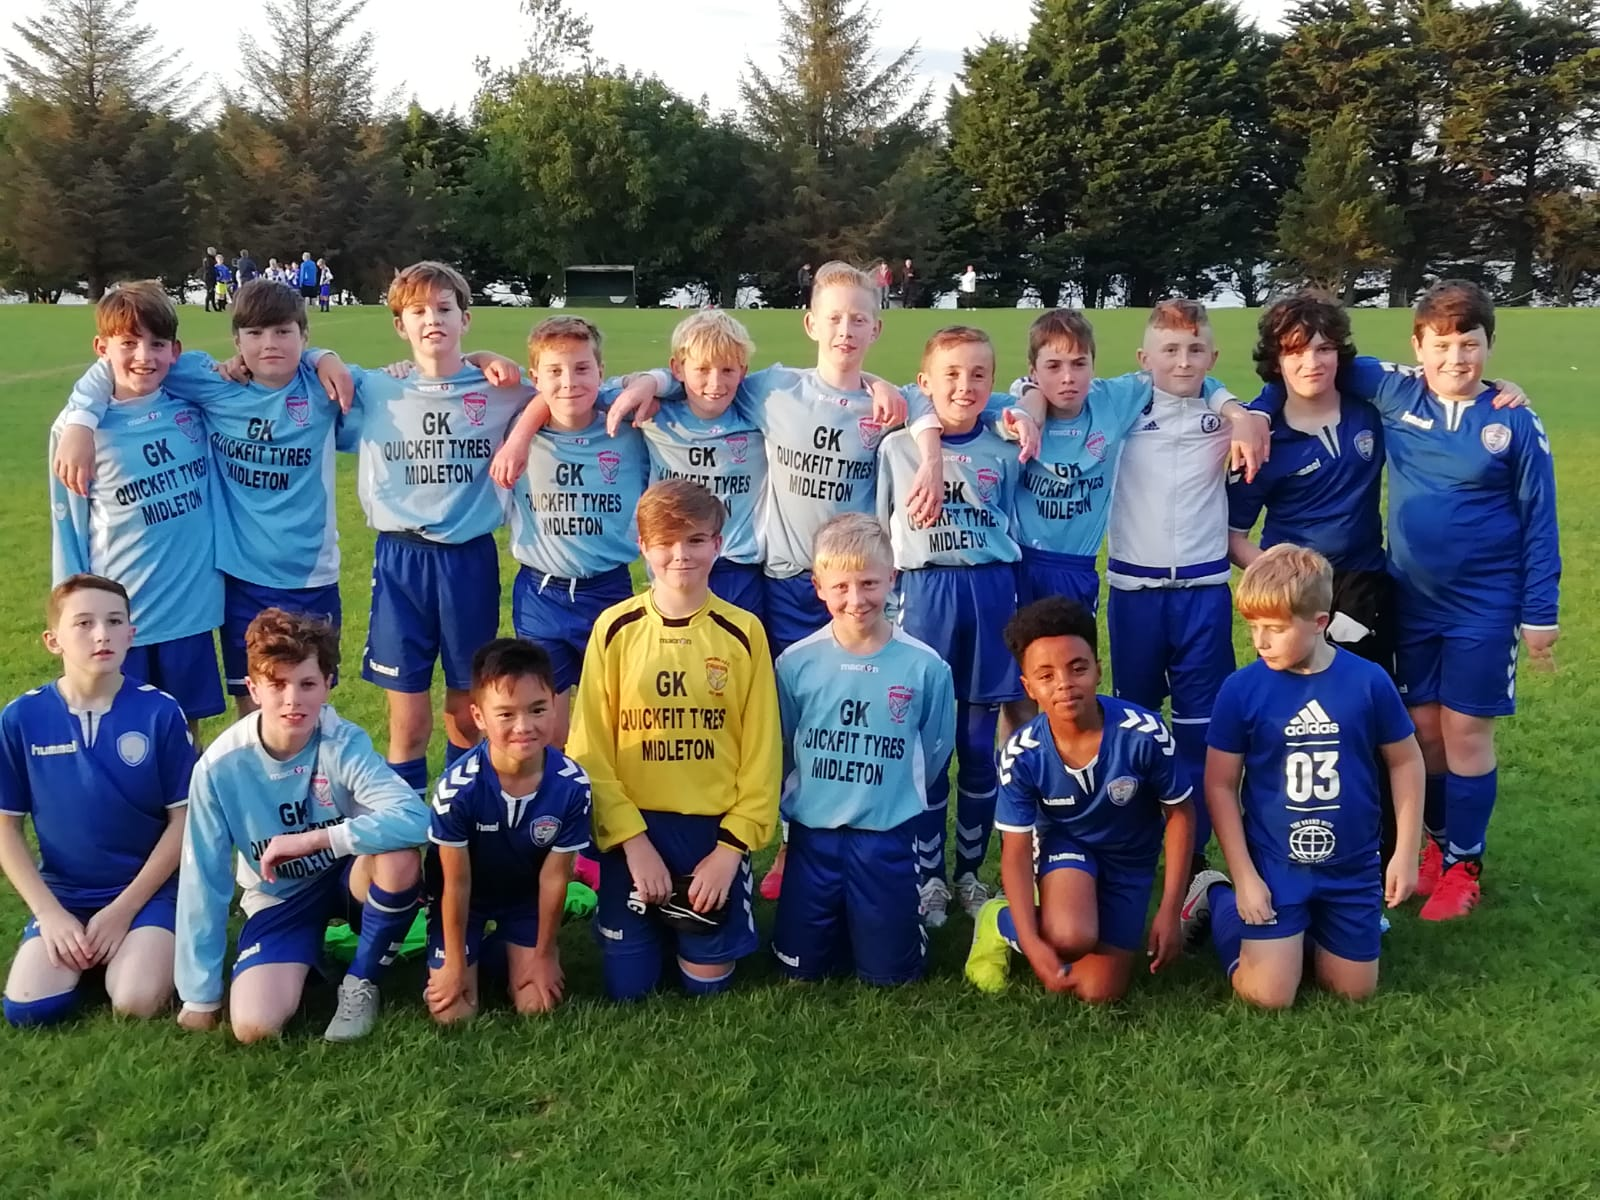 Corkbeg u13's got their first win of the season against a tough Corinthians 'A' side on a lovely evening in Whitegate.